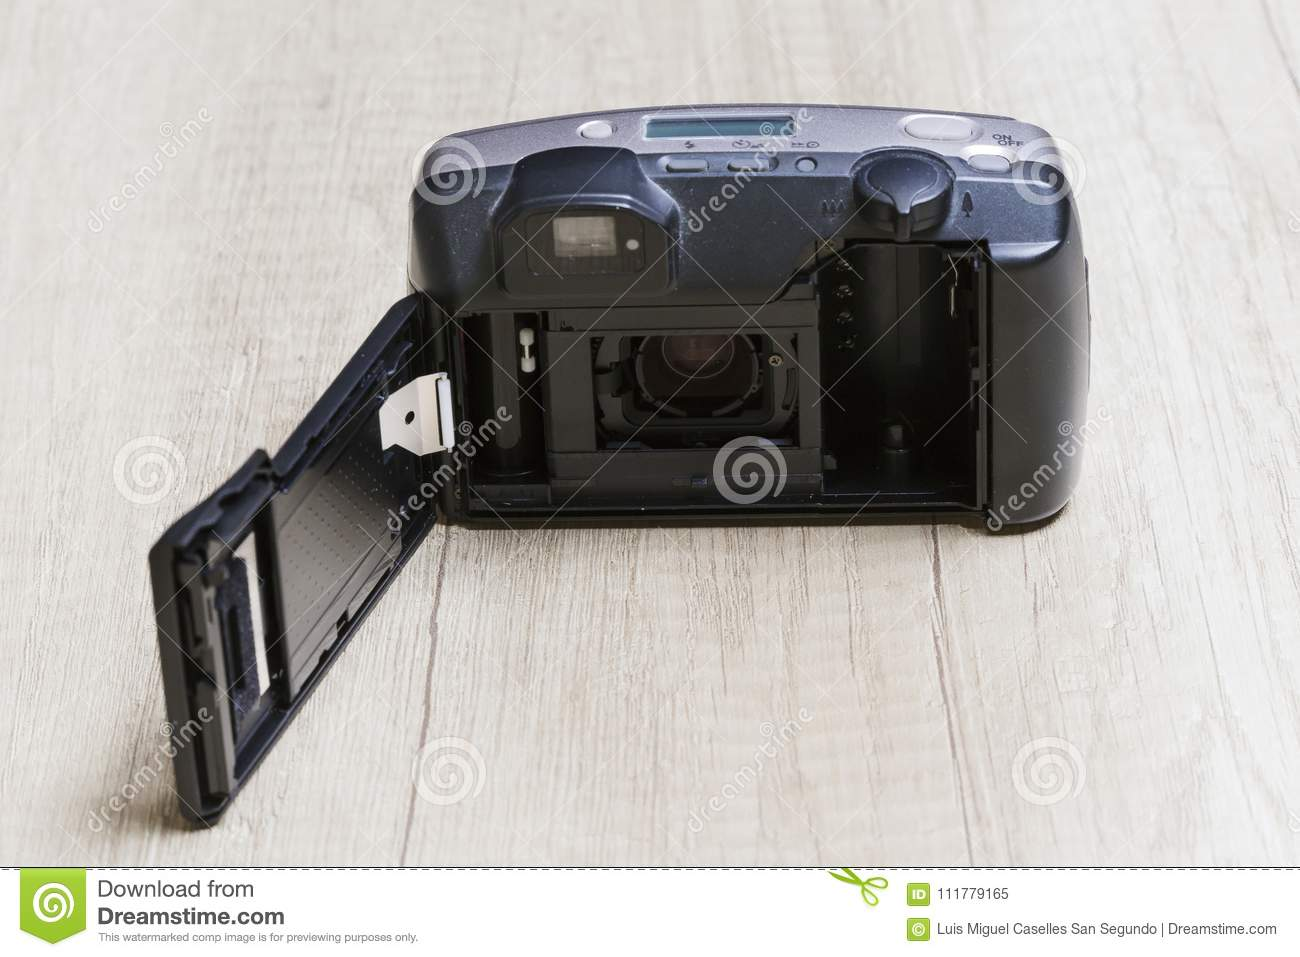 Analog camera open on a wooden board